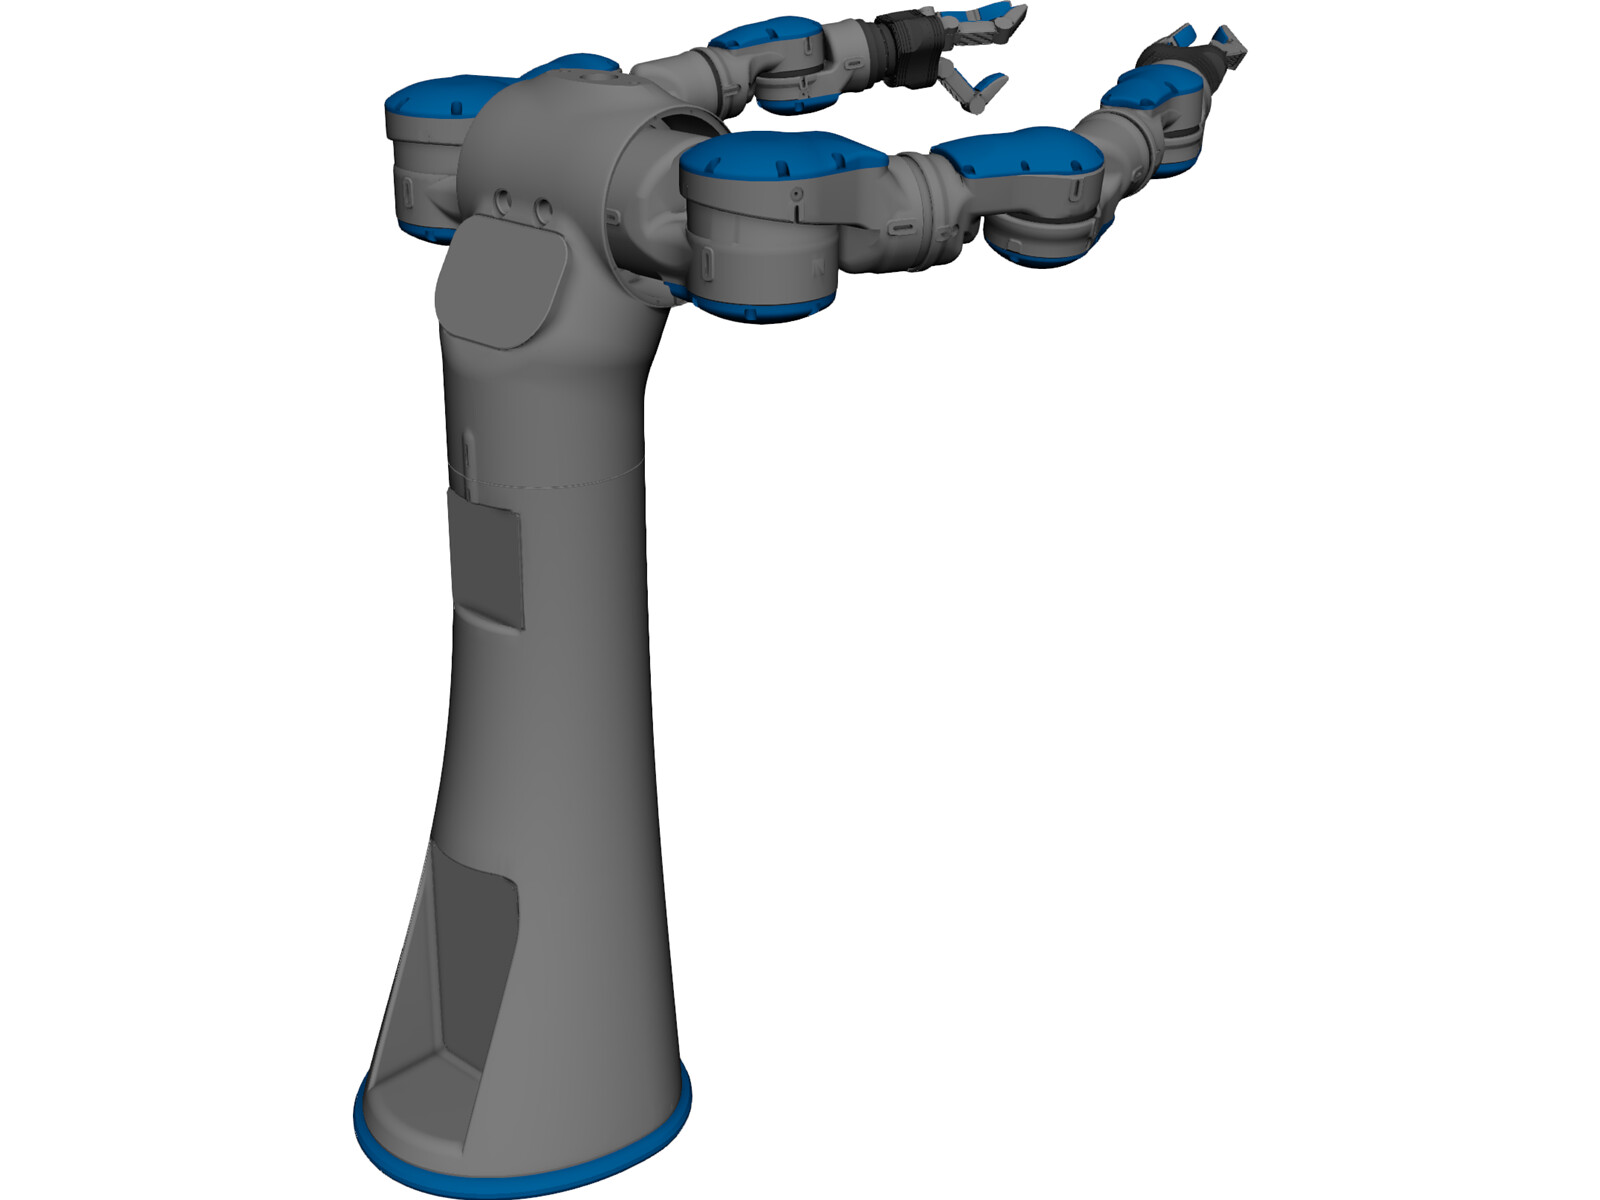 Two-Armed Industrial Robot